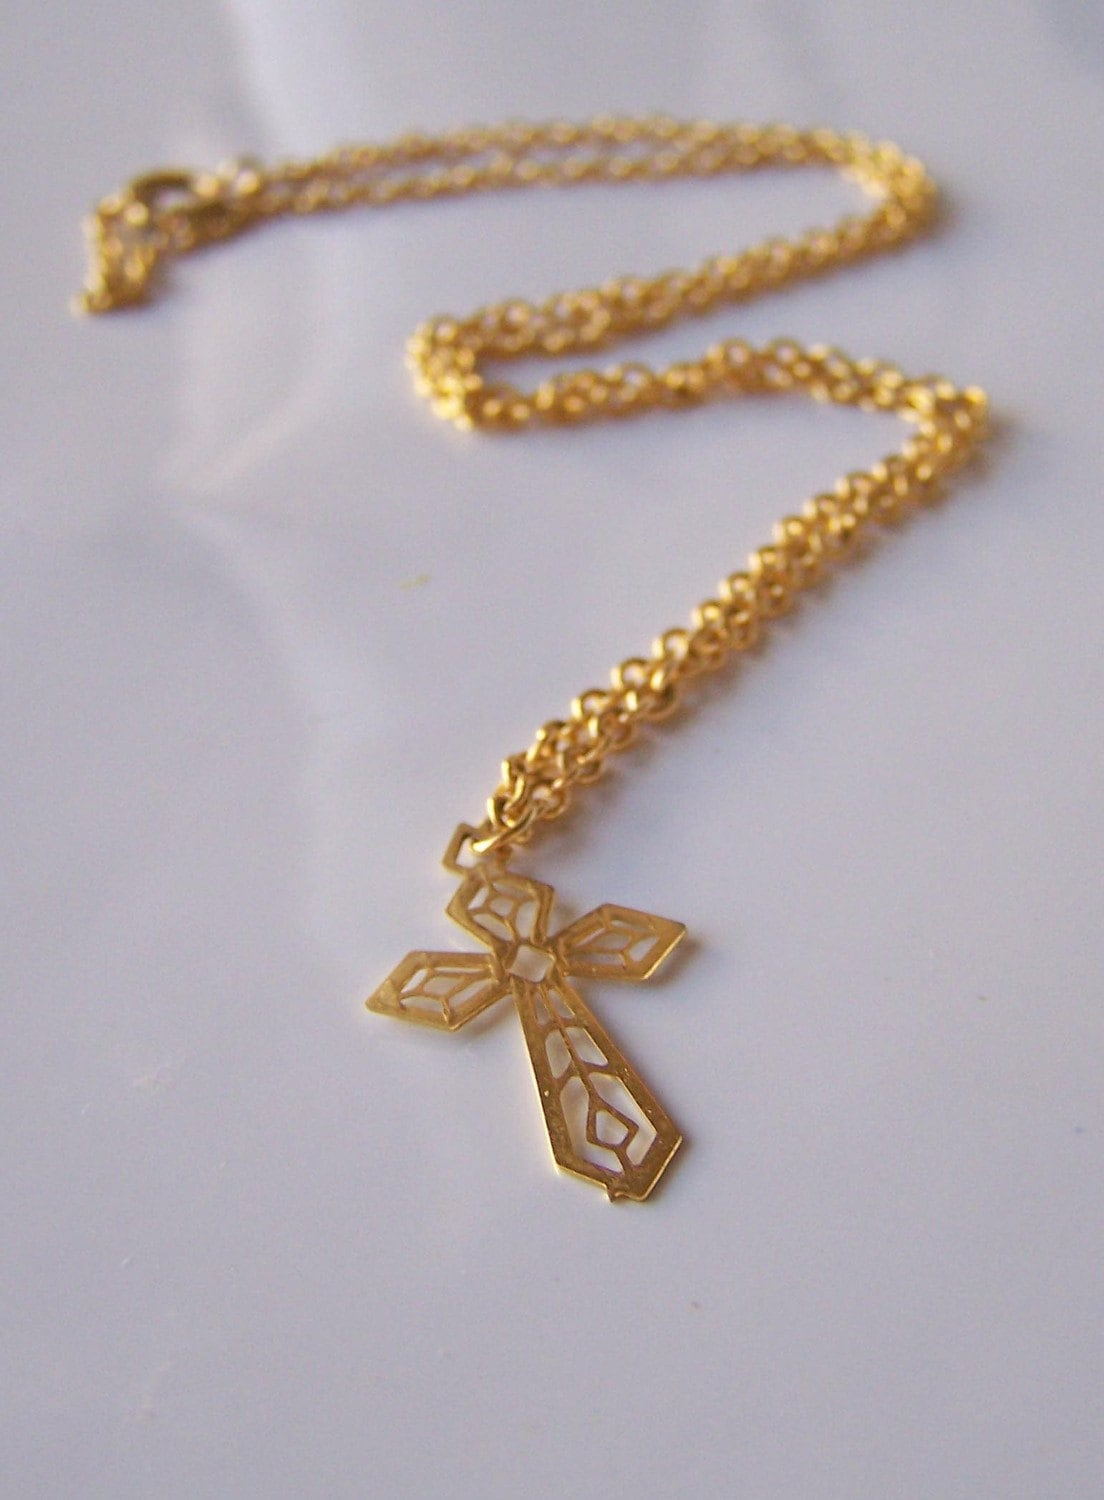 Gold Cross Necklace Australia